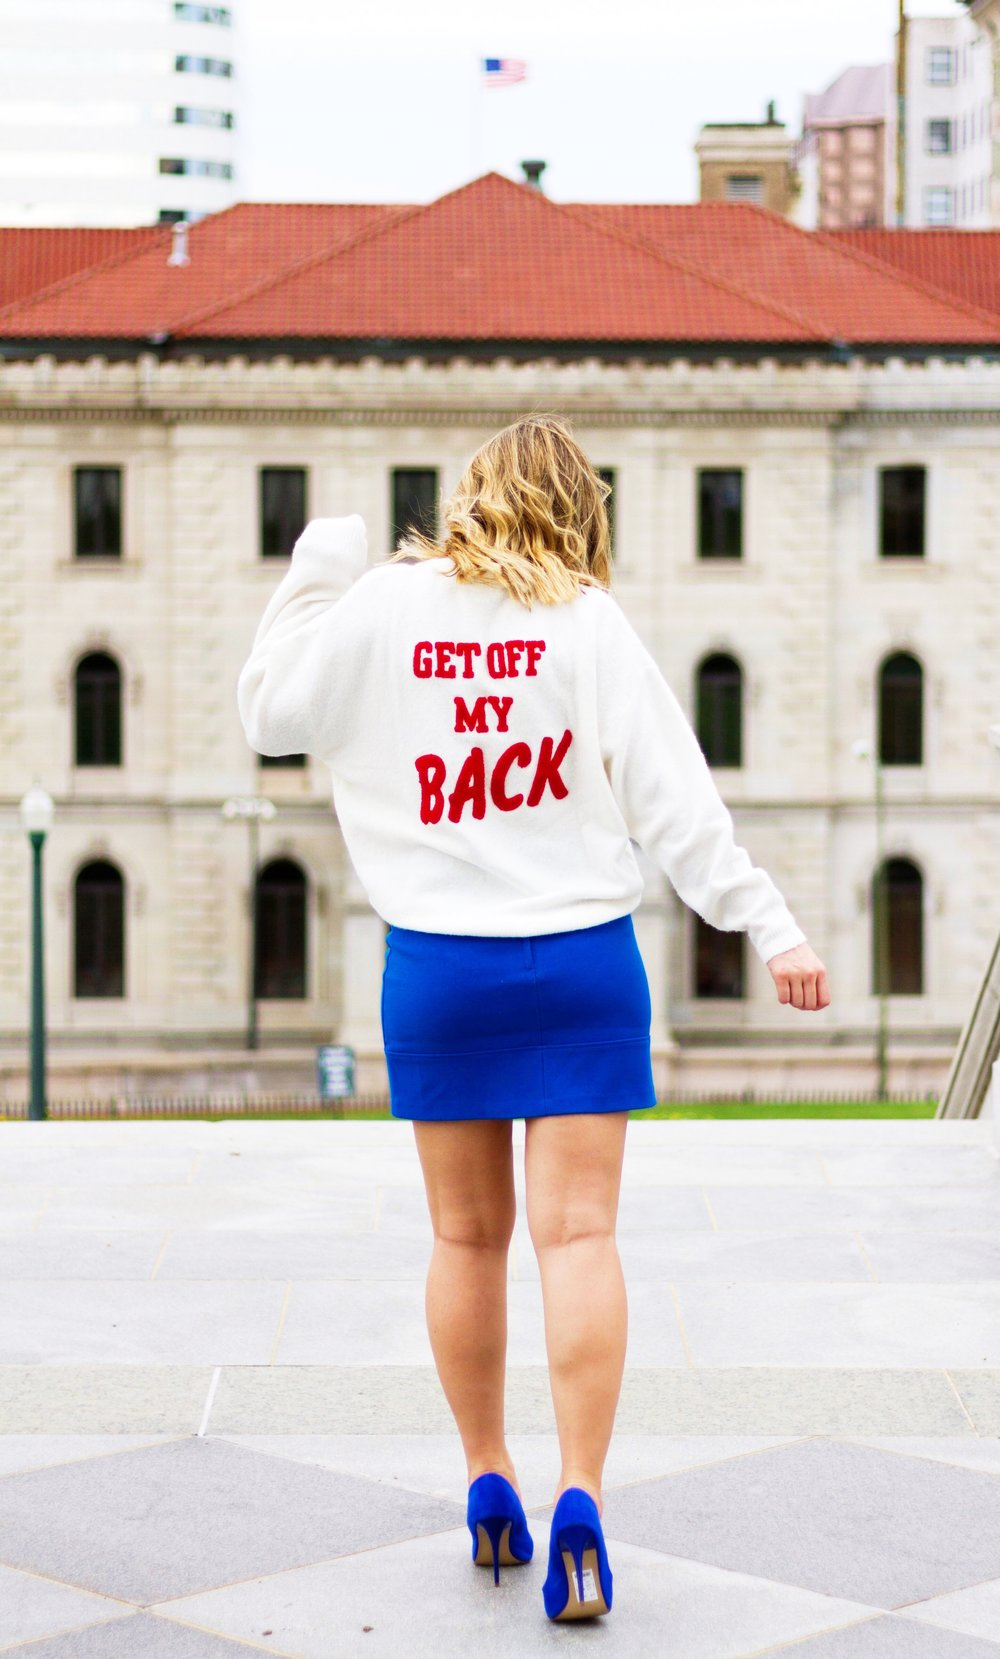 GET OFF MY BACK - LET YOUR STYLE SPEAK YOUR MOOD